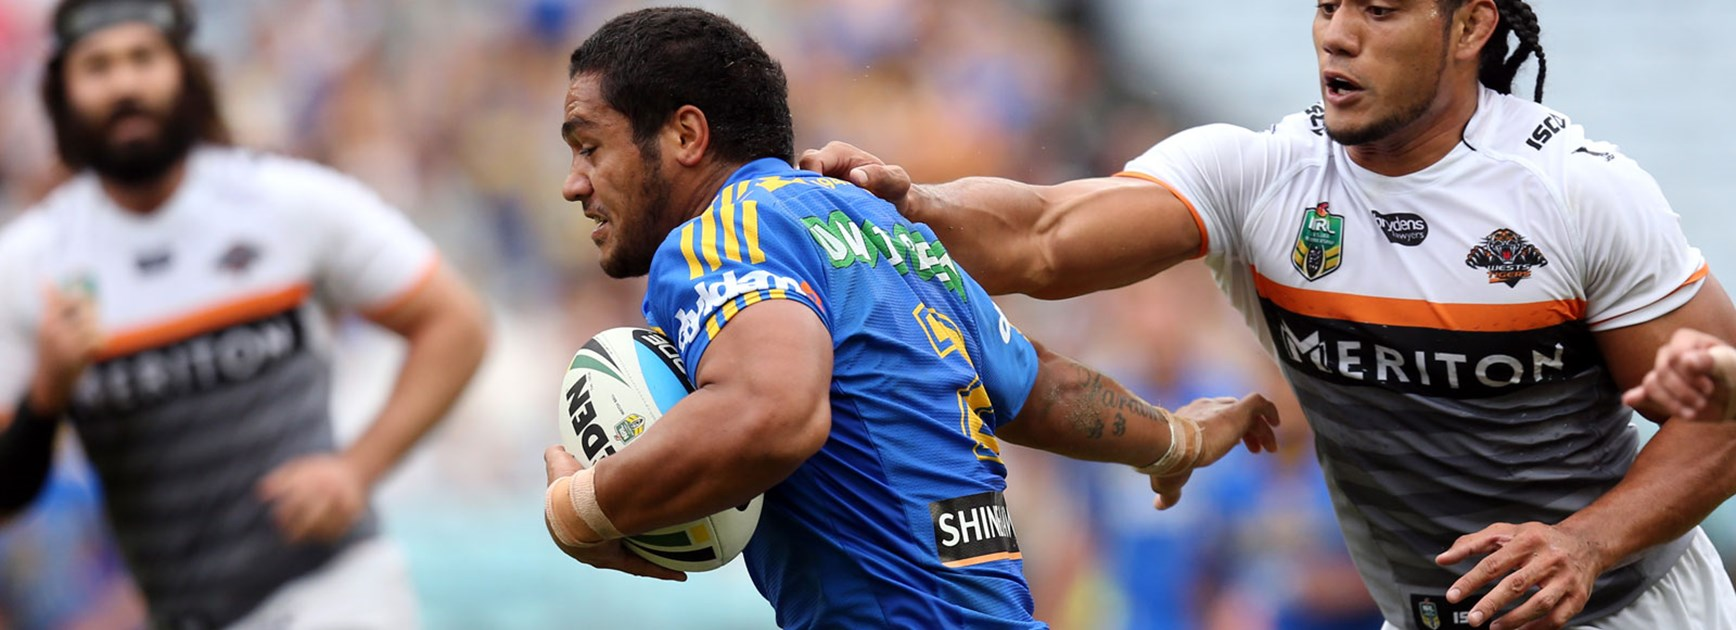 Eels winger Bureta Faraimo has credited coach Brad Arthur with resurrecting his rugby league career.